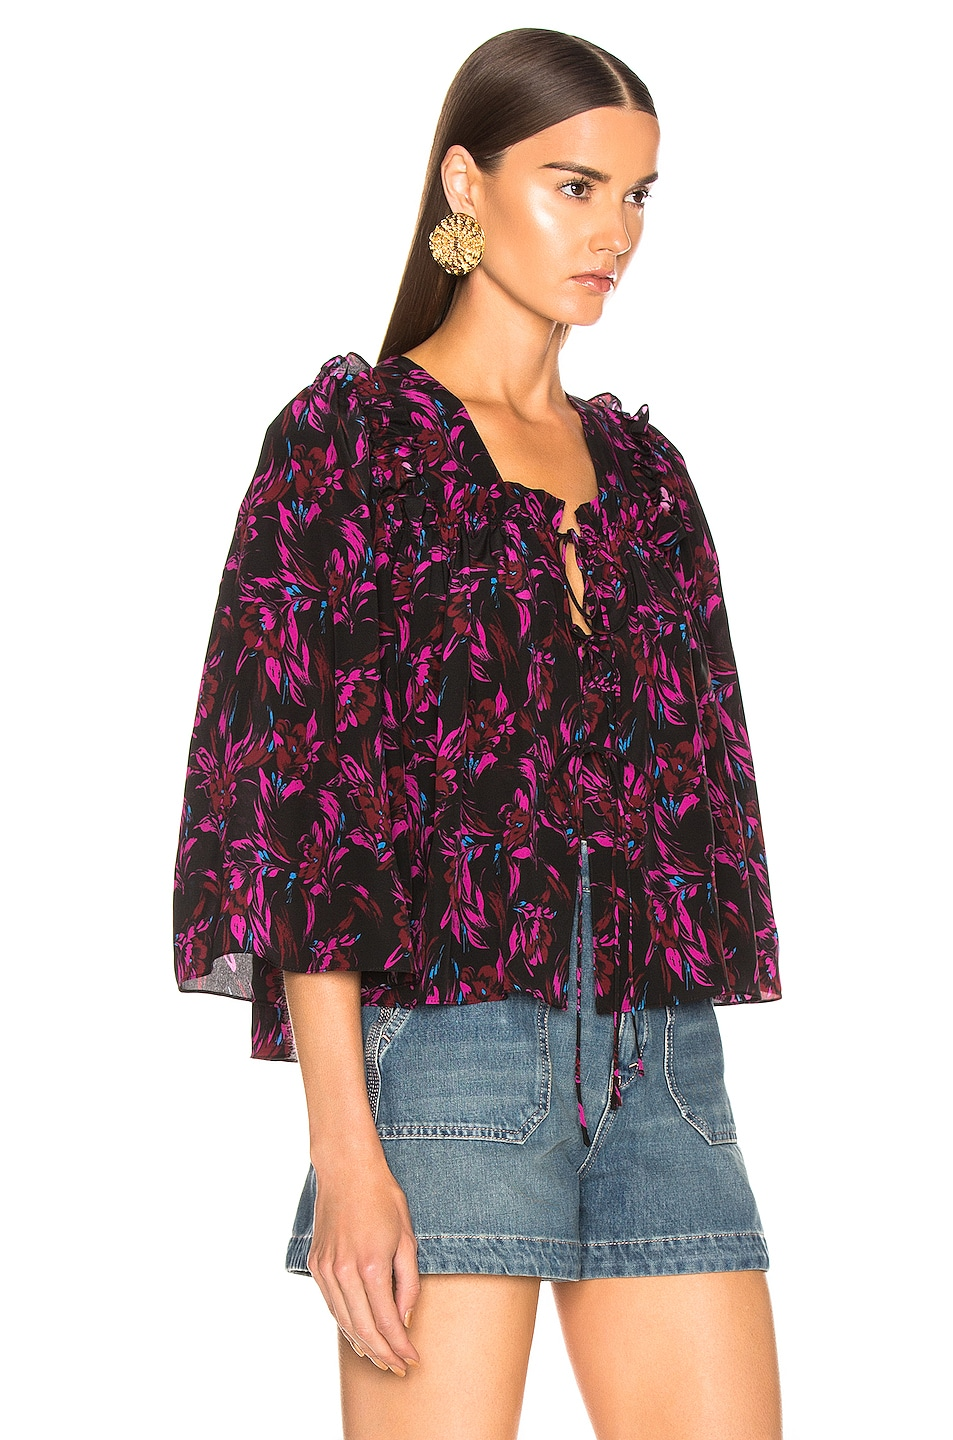 Image 2 of Les Reveries Tie Front Top in Wispy Floral Black